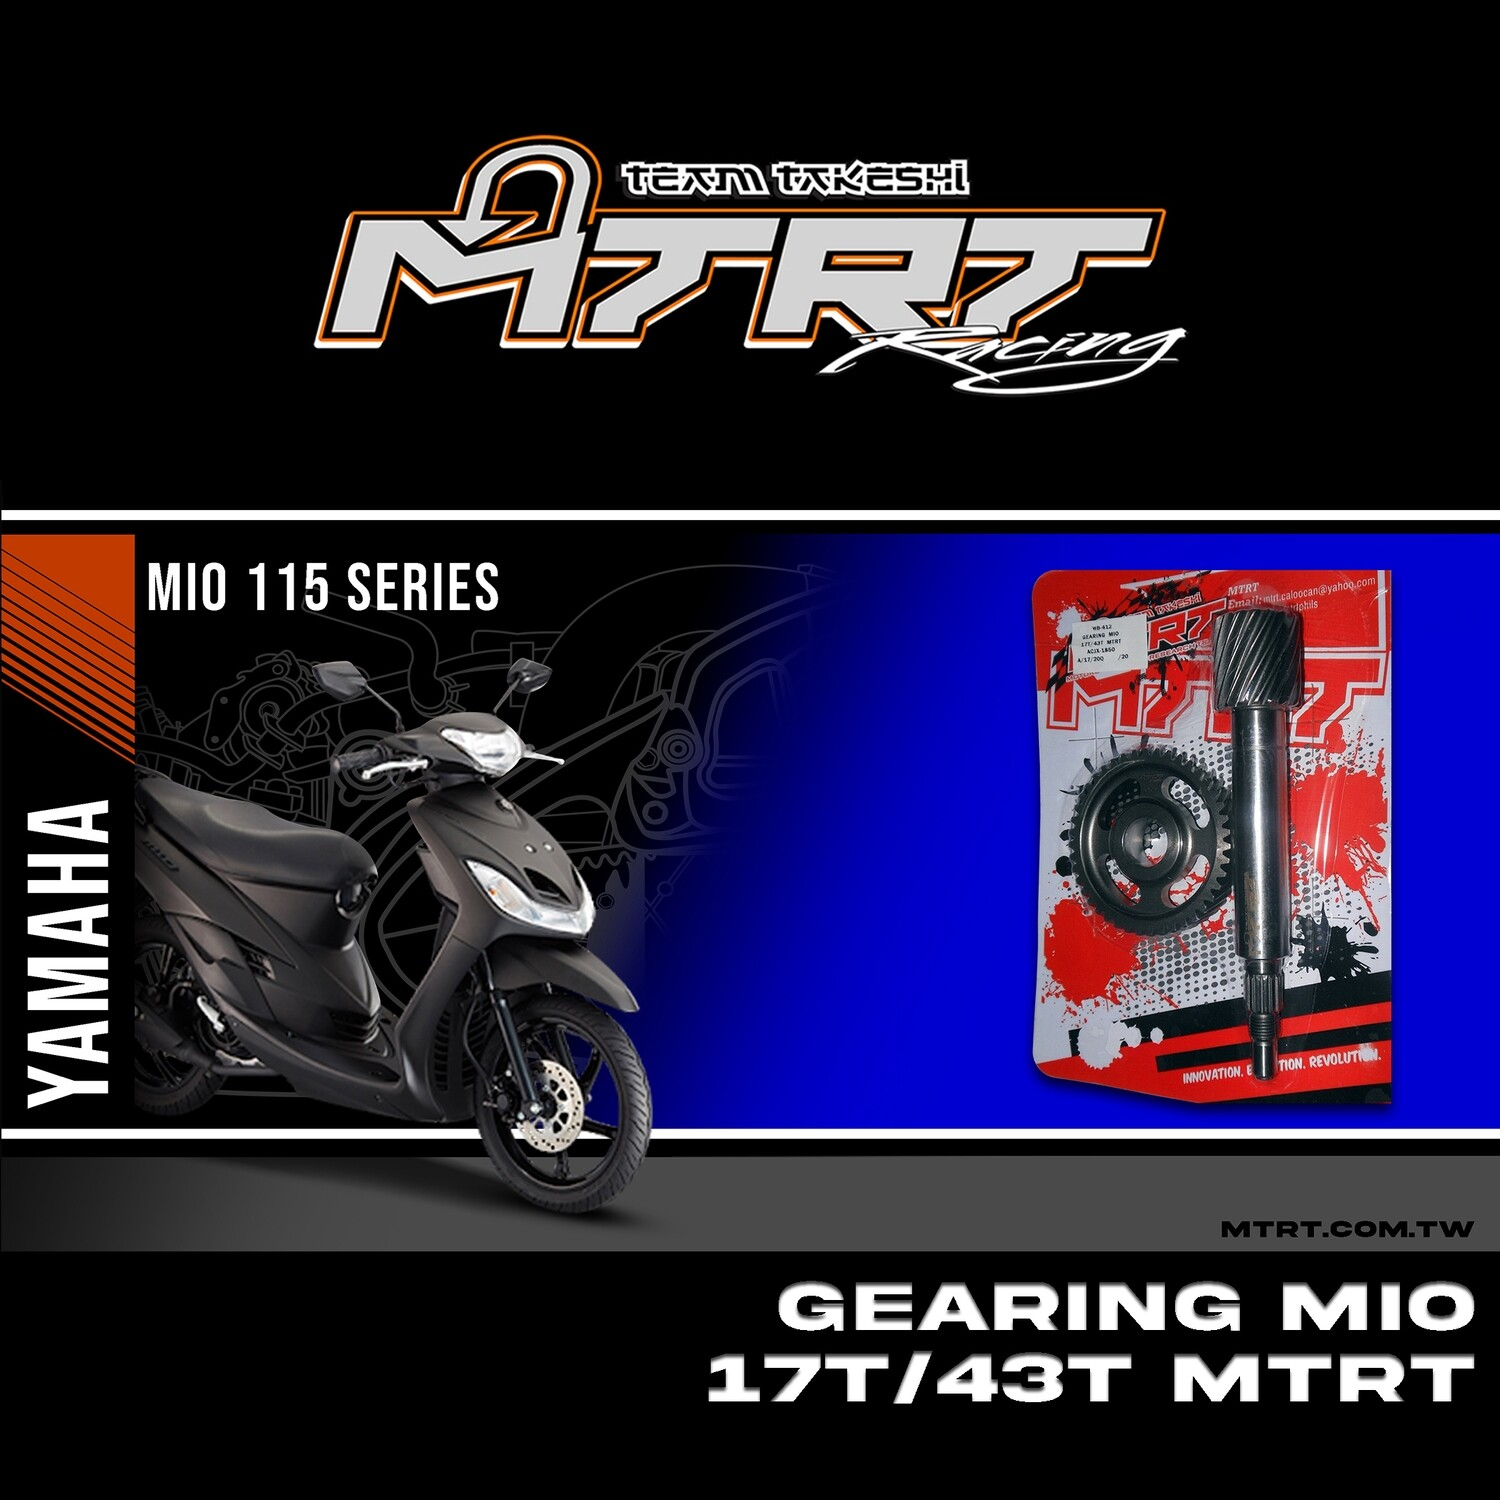 GEARING  MIO  17T/43T  MTRT